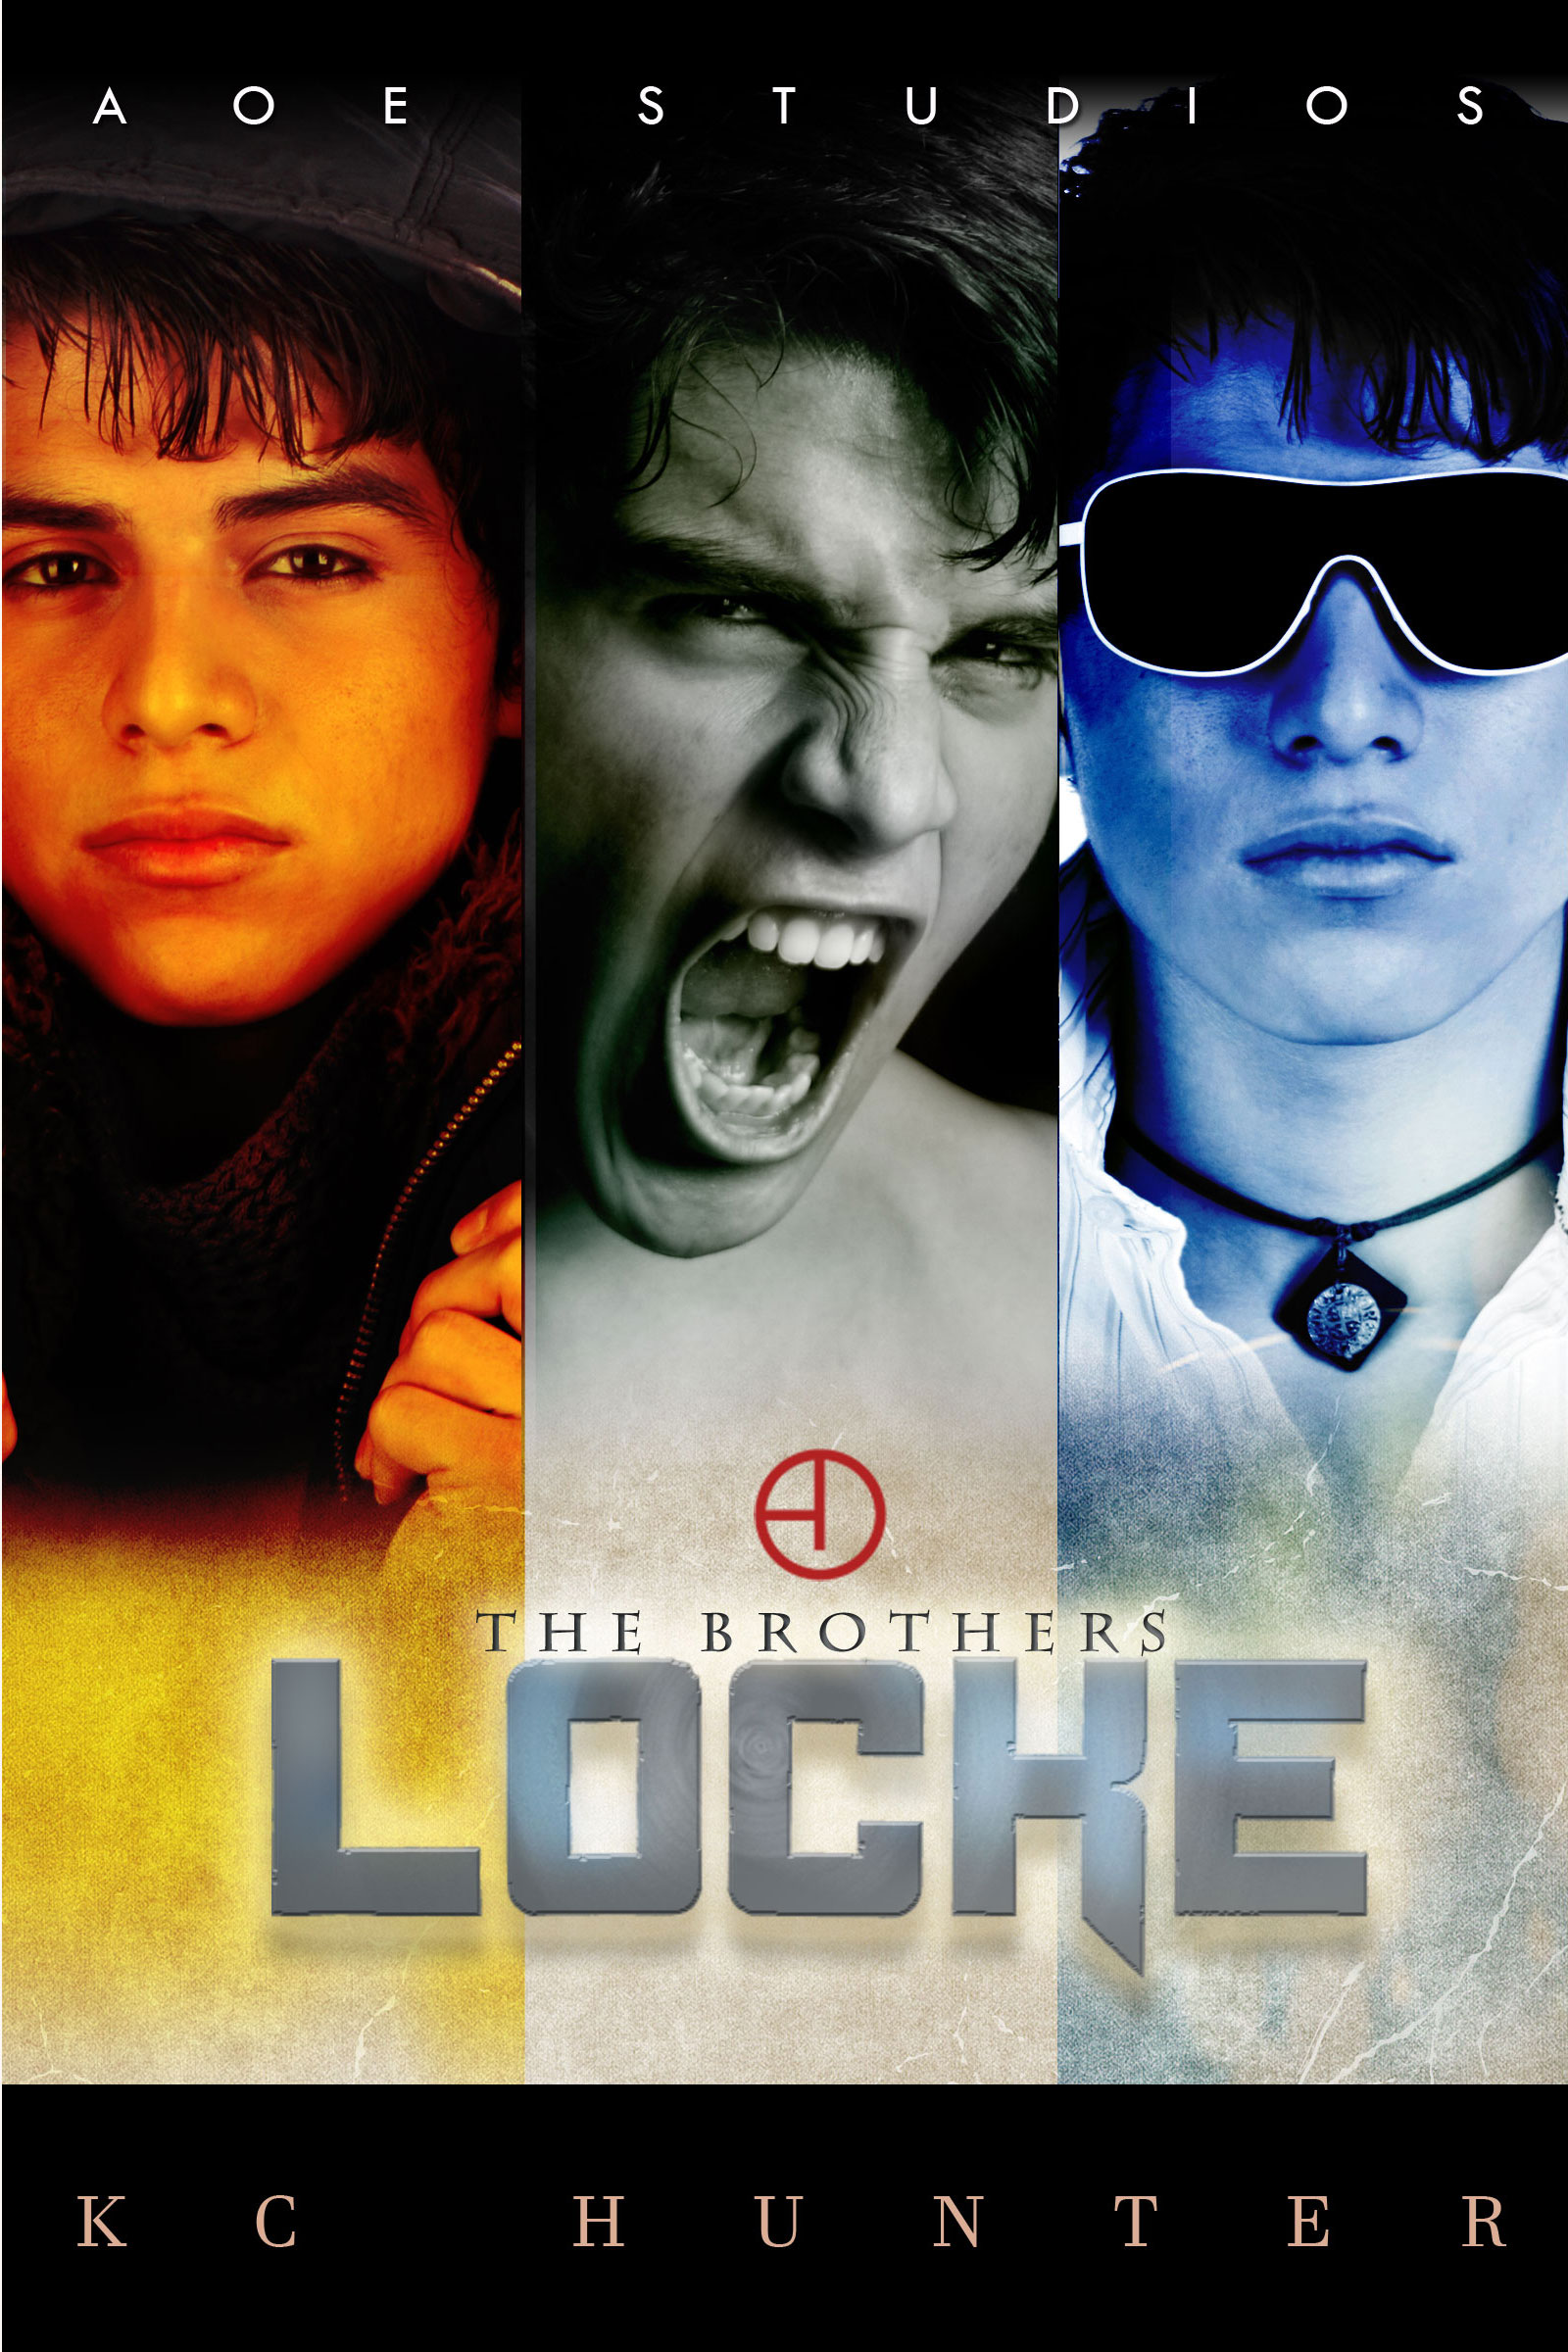 The Brothers Locke Series Book Cover Image